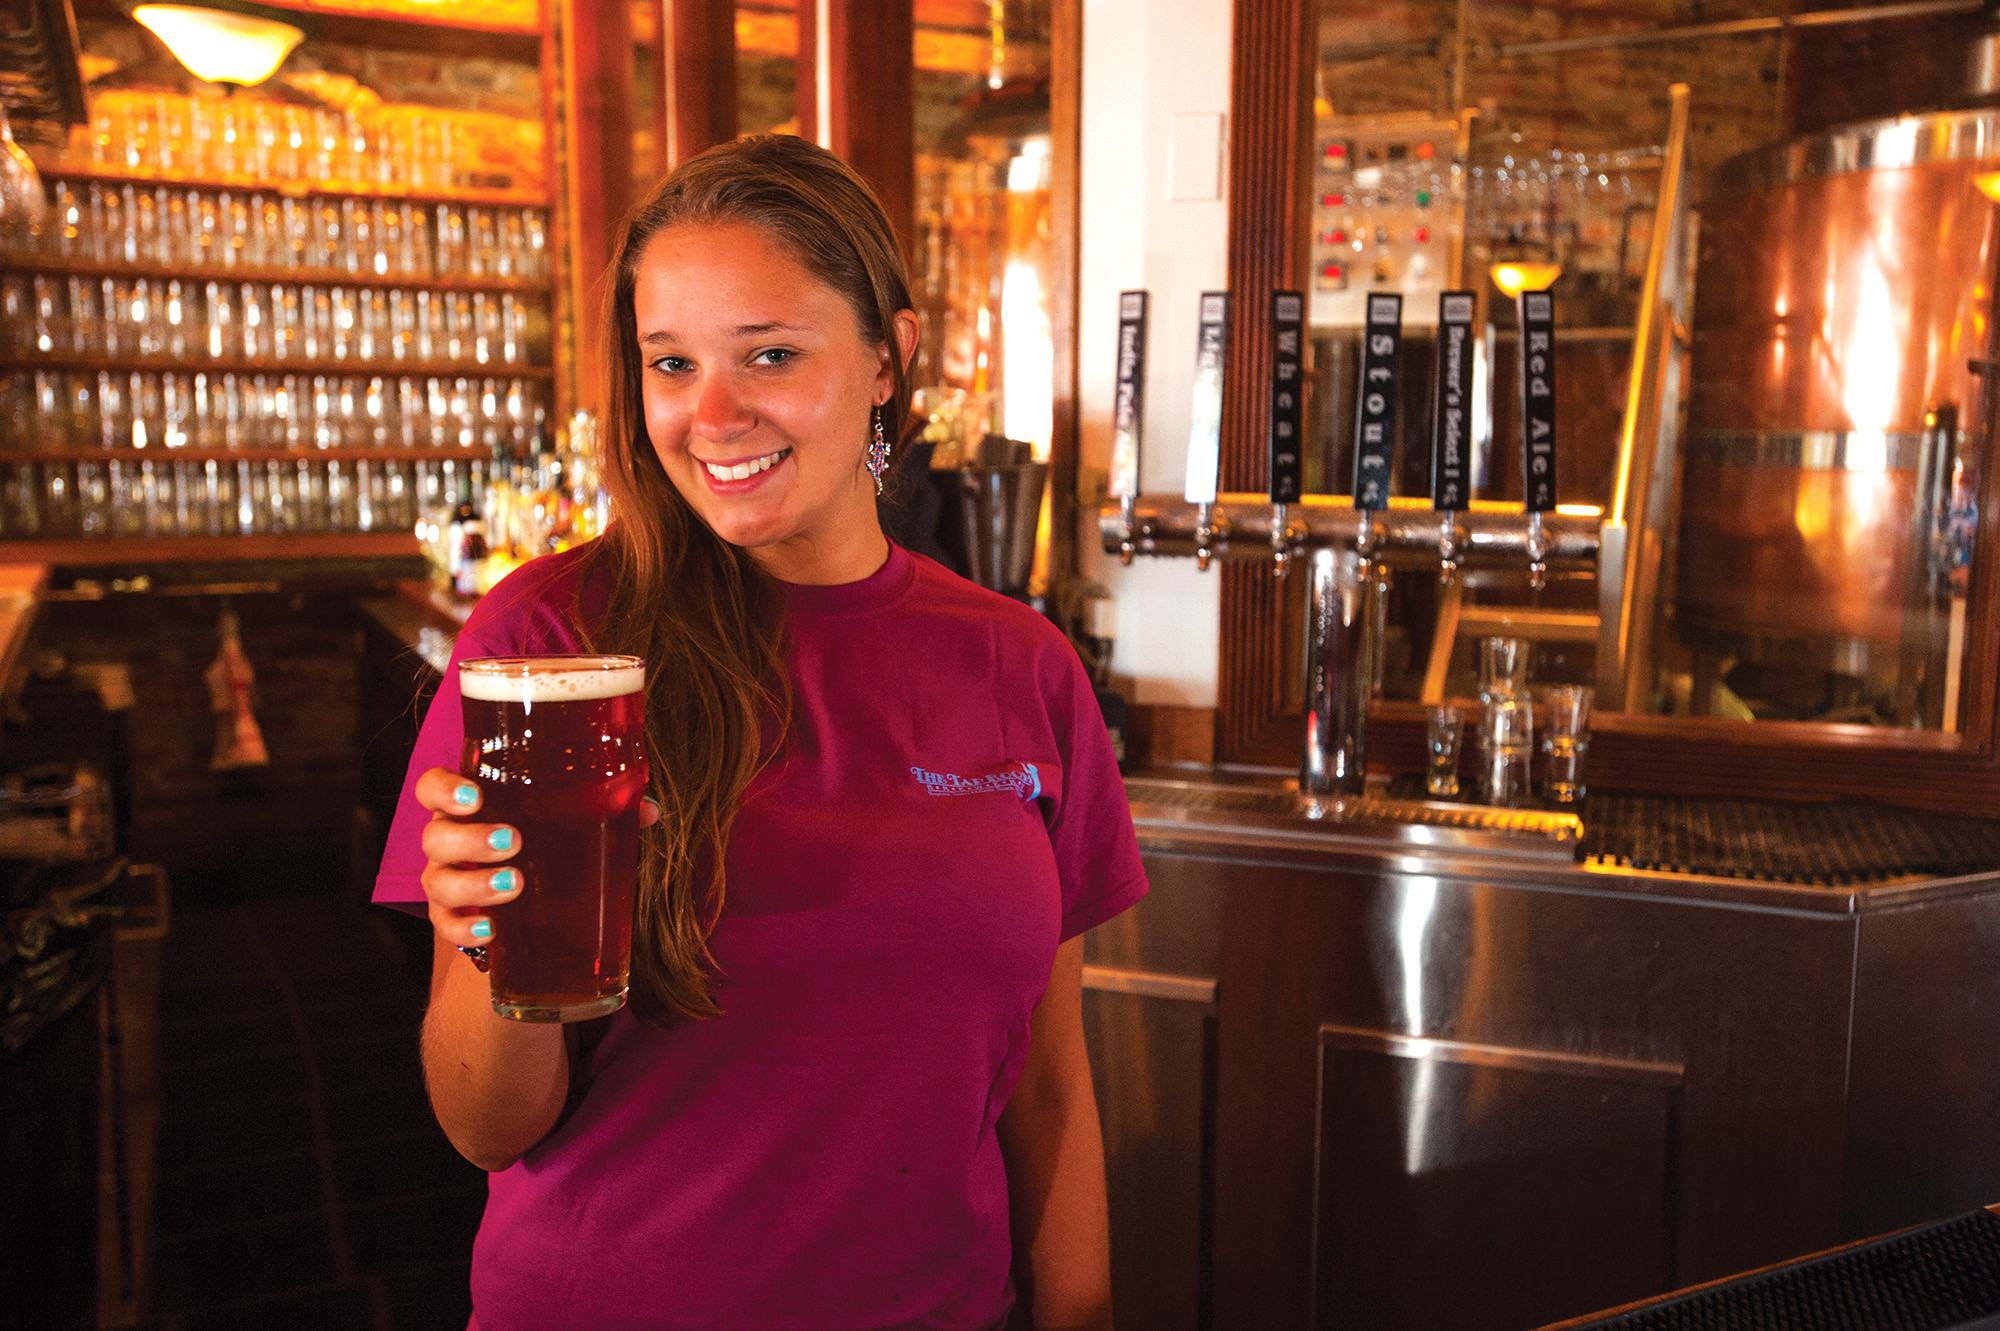 Ragtime Tavern & Seafood Grill has been brewing beer onsite since 1993 — like this Red Brick Ale served by Stephanie Wantage.